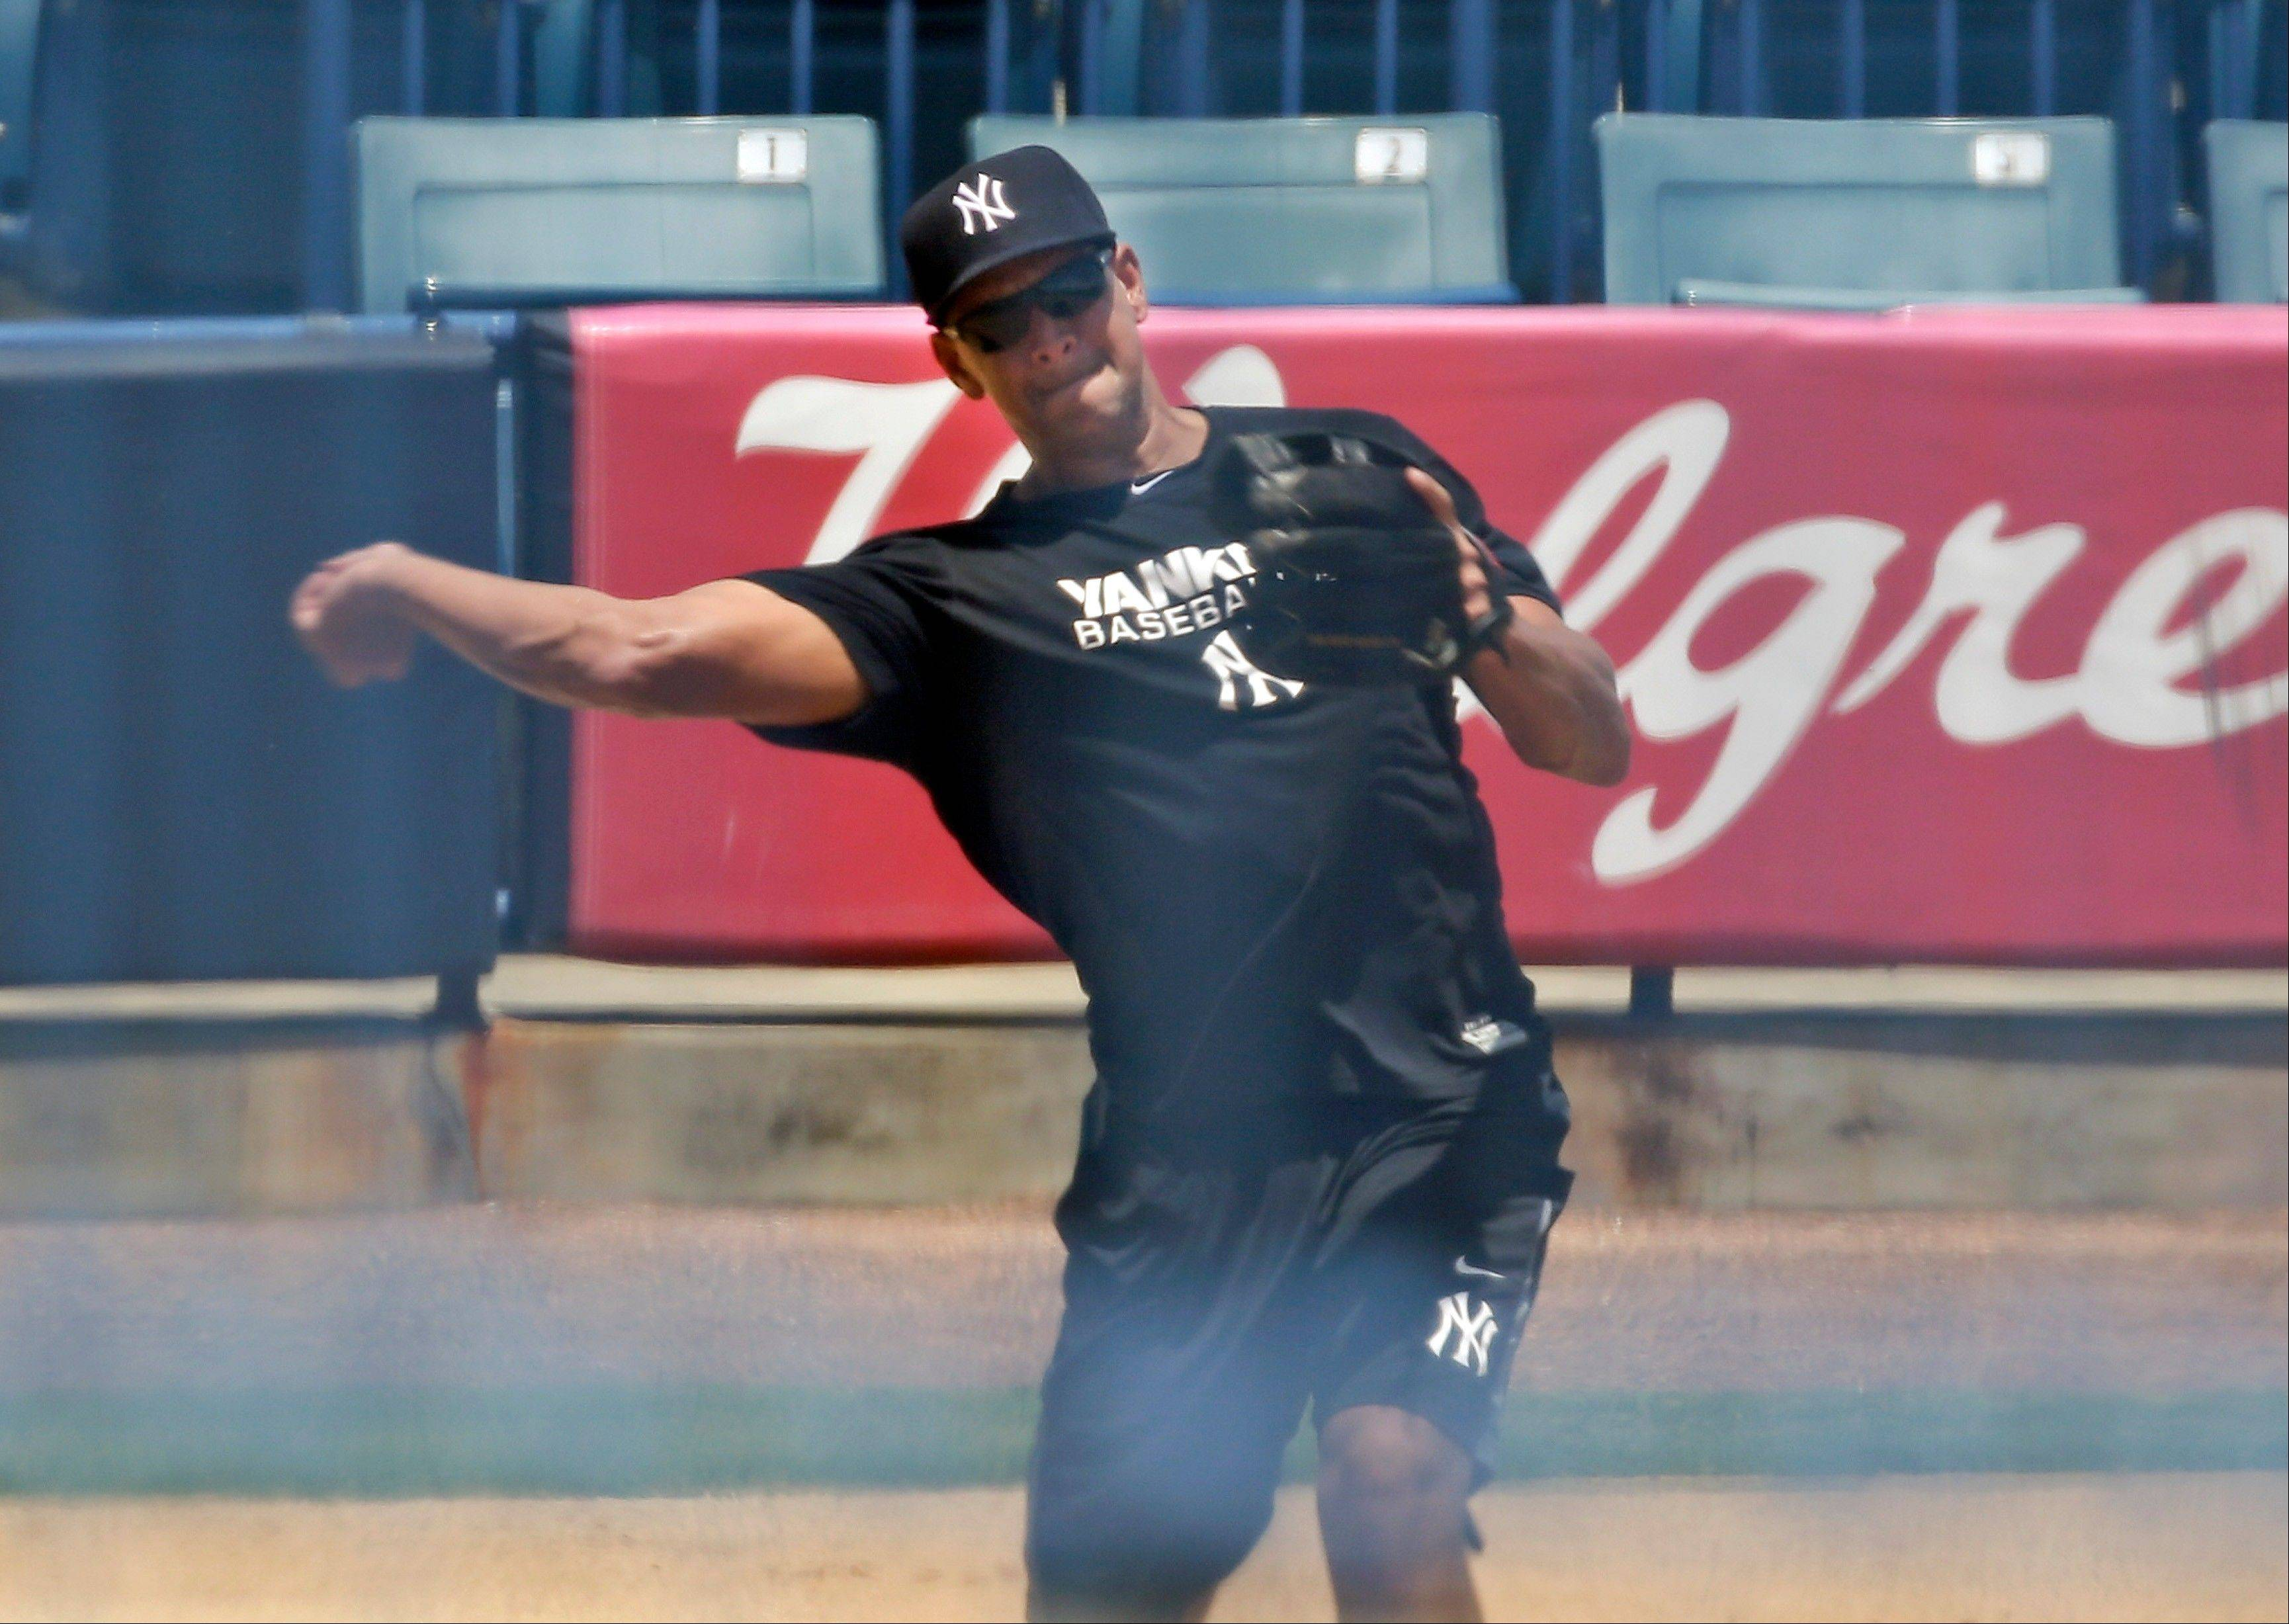 New York Yankees third baseman Alex Rodriguez throws the ball during a rehabilitation workout at Steinbrenner Field Thursday, Aug. 1, 2013, in Tampa, Fla. Major League Baseball is threatening to kick A-Rod out of the game for life unless the New York star agrees not to fight a lengthy suspension for his role in the sport's latest drug scandal, according to a person familiar with the discussions. The person spoke to The Associated Press on Wednesday, July 31, 2013 on condition of anonymity because no statements were authorized. (AP Photo/Chris O'Meara)